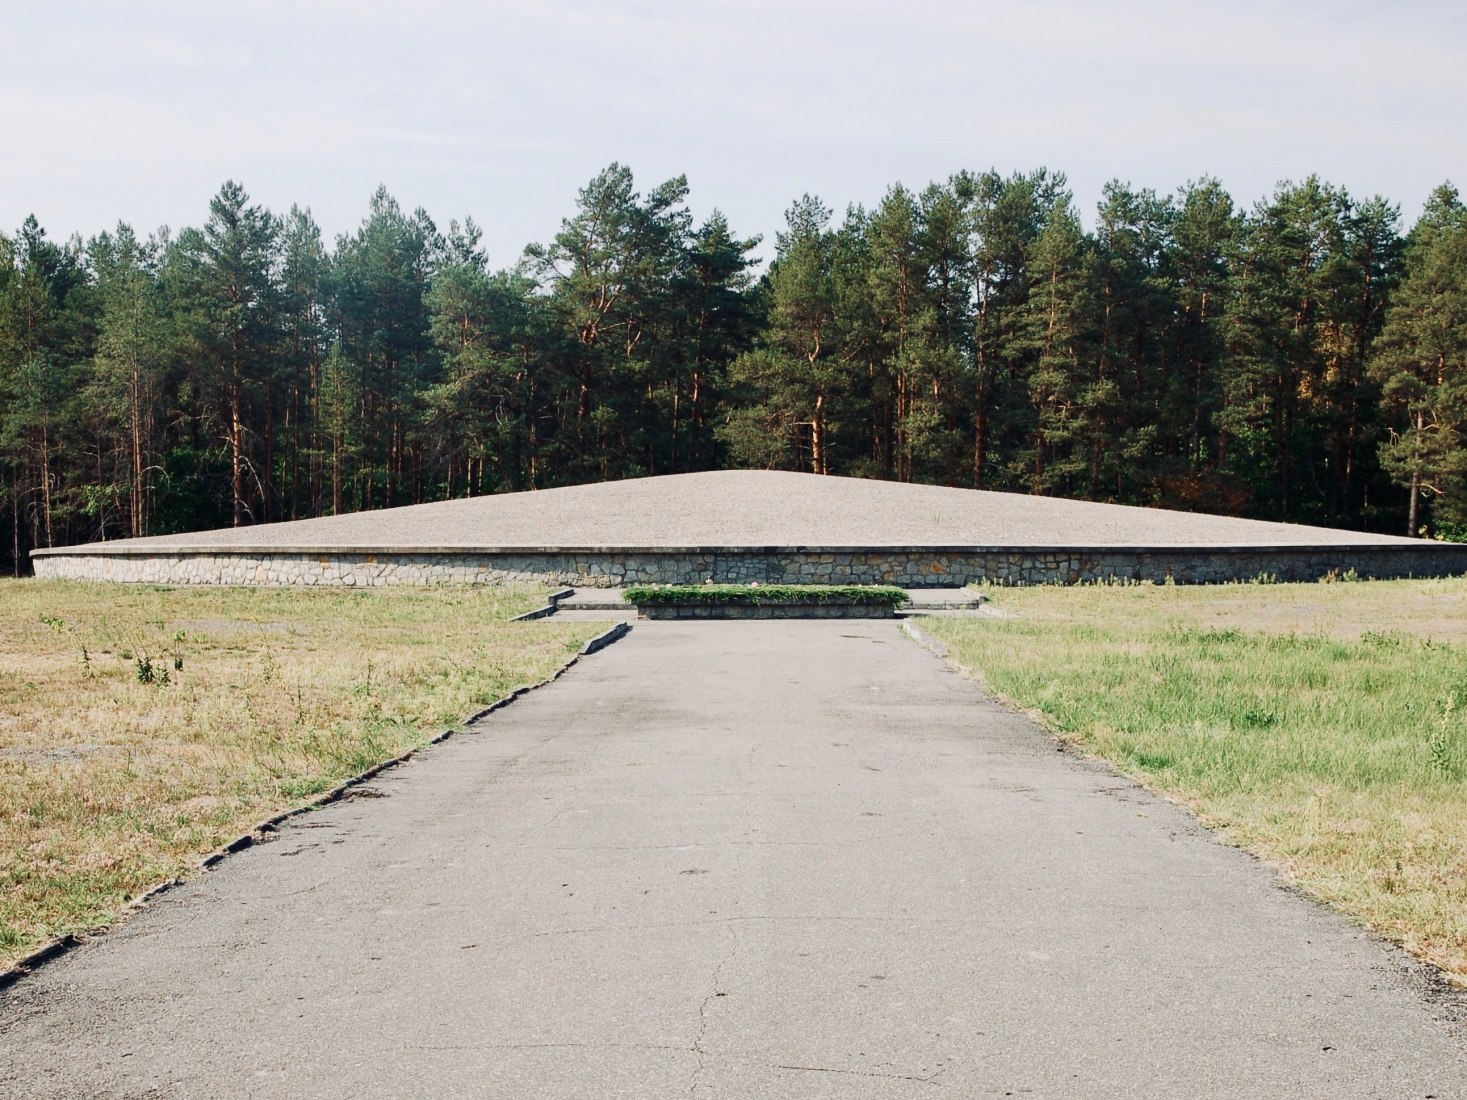 A large flying saucer-looking monument covers a giant mound of victims ashes at the Sobibór death camp in the middle of the Polish forest, near the country's boarder with Ukraine.